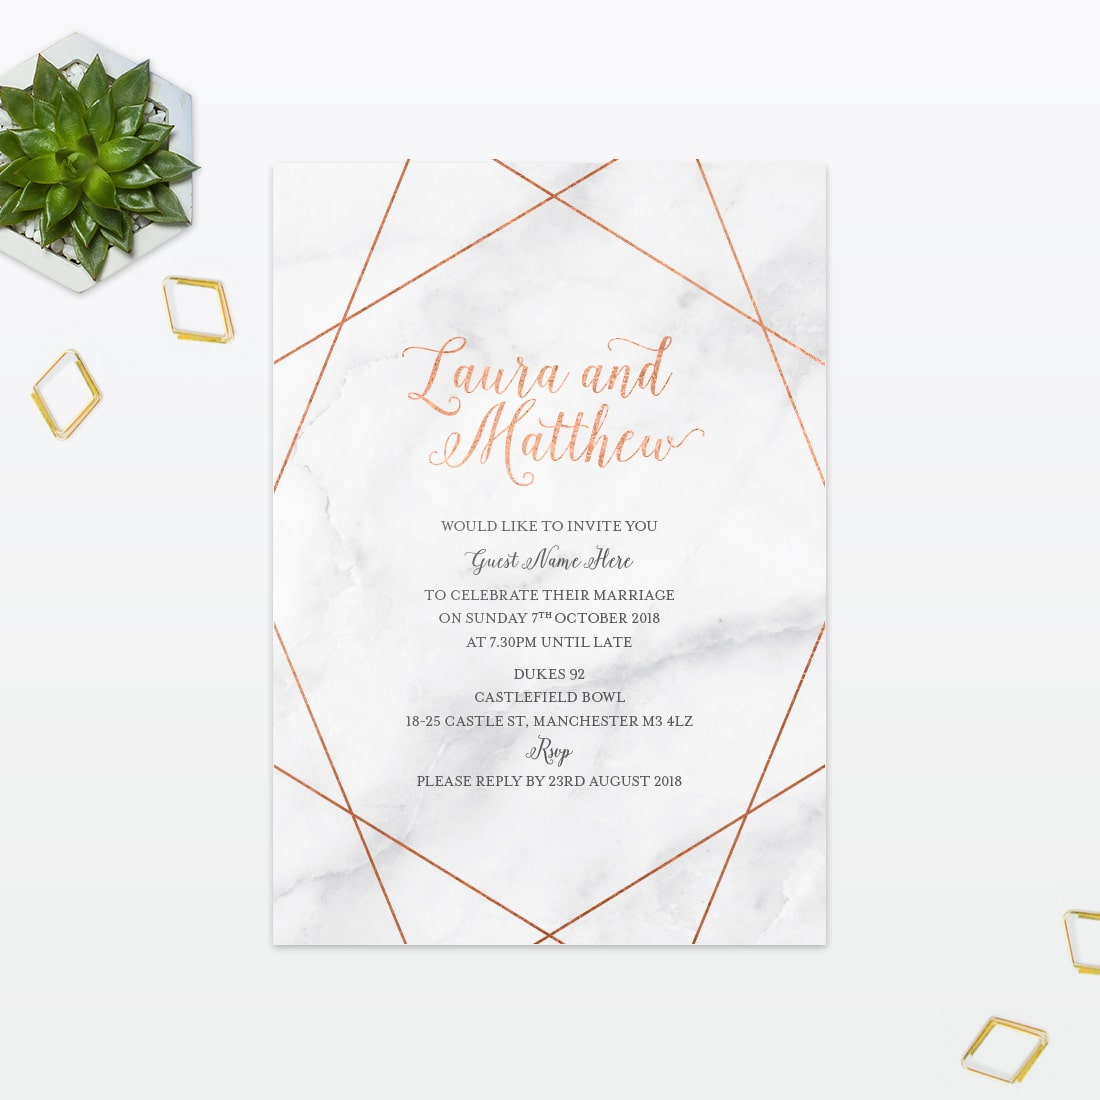 Invitation Wedding Card: Geometric Wedding Invitation